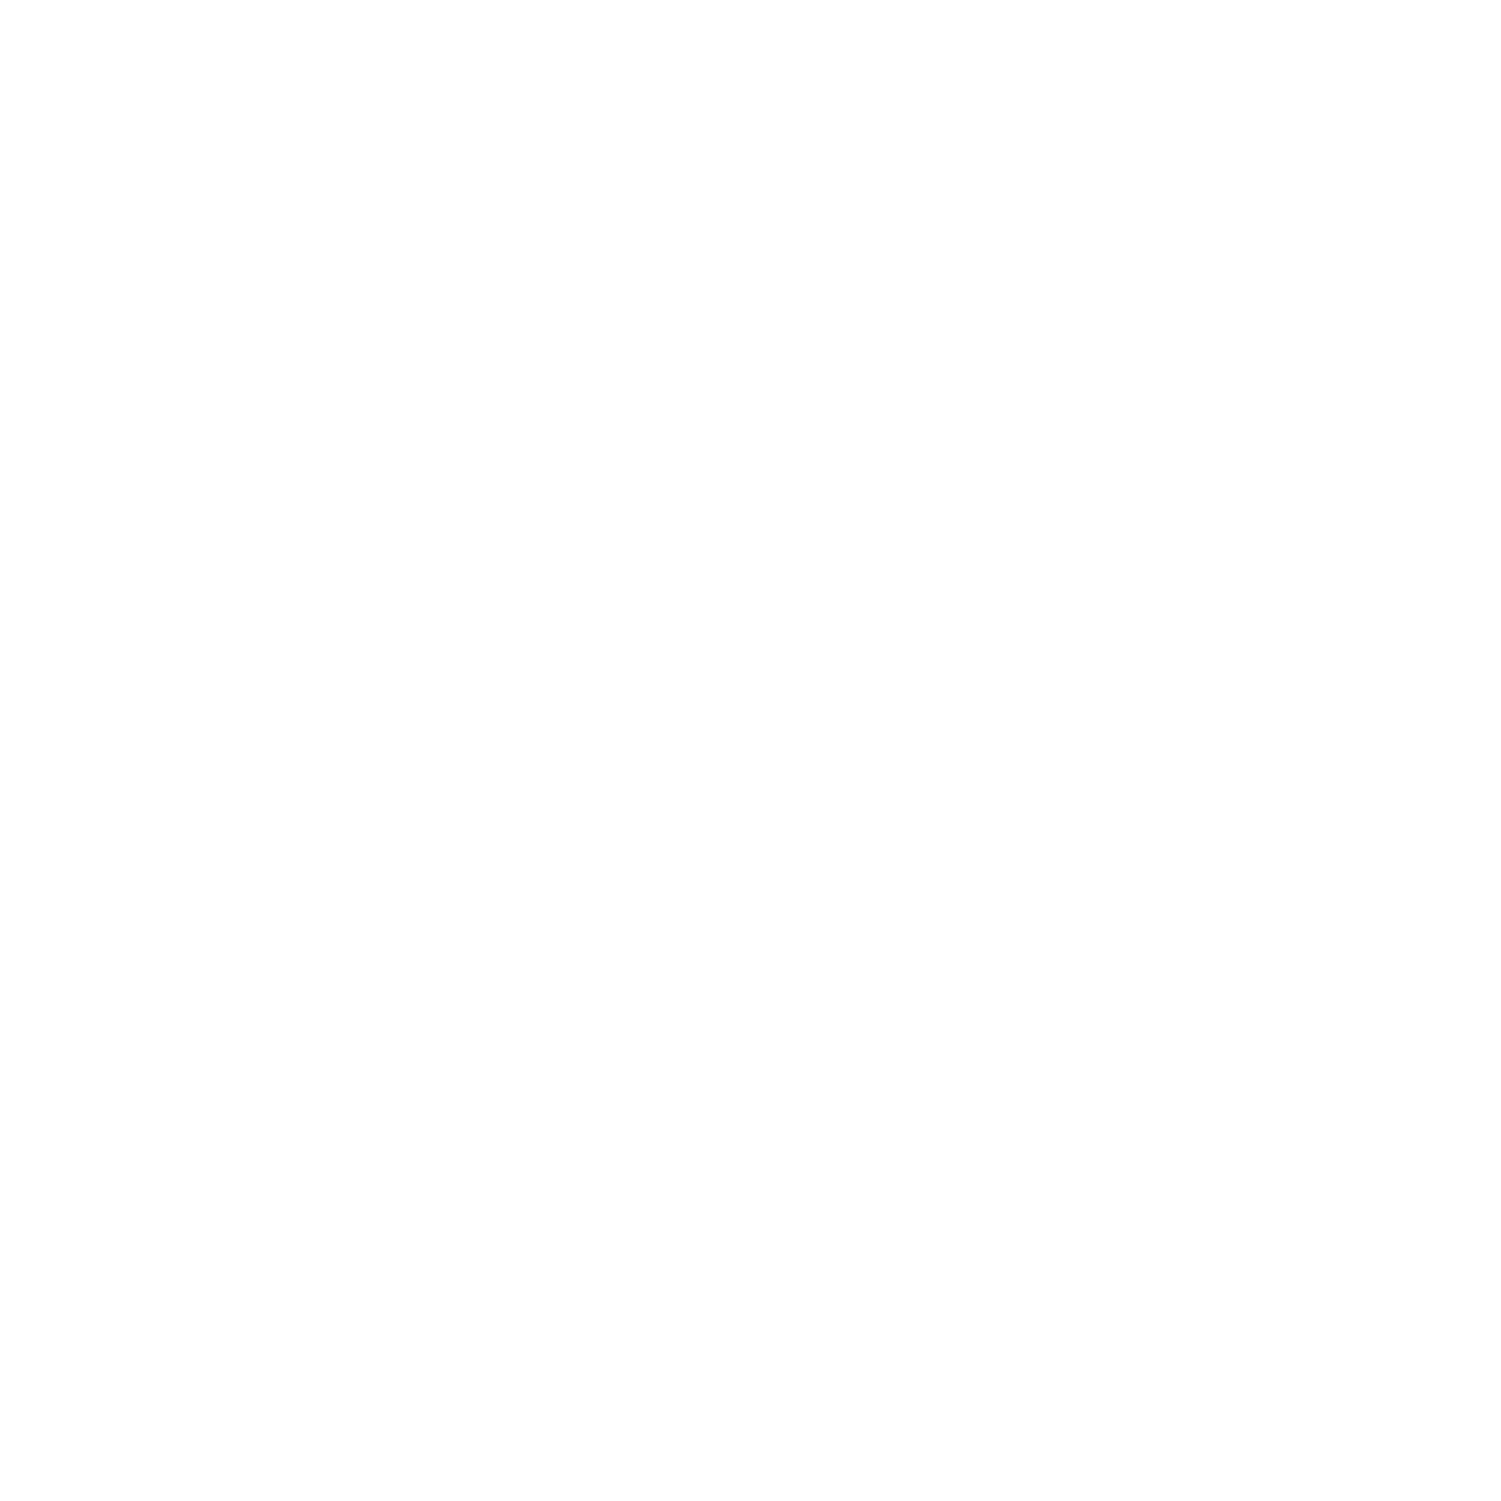 Cypher Media - Final_CM Circle white-02.png